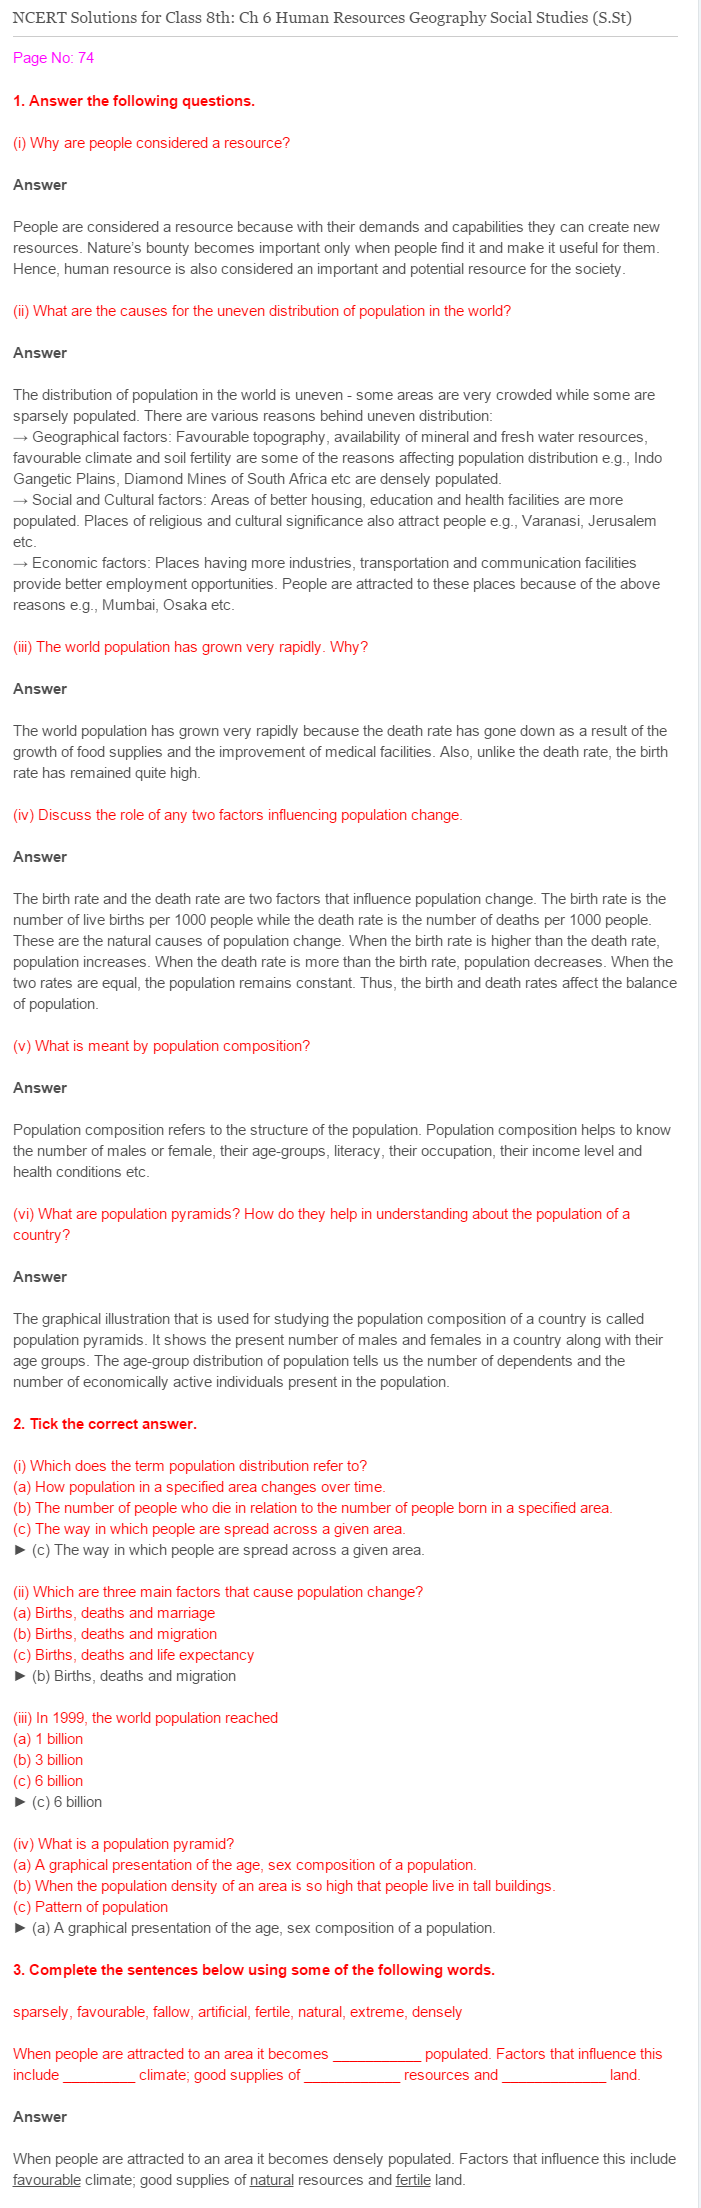 NCERT Solutions for Class 8 Social Science Geography